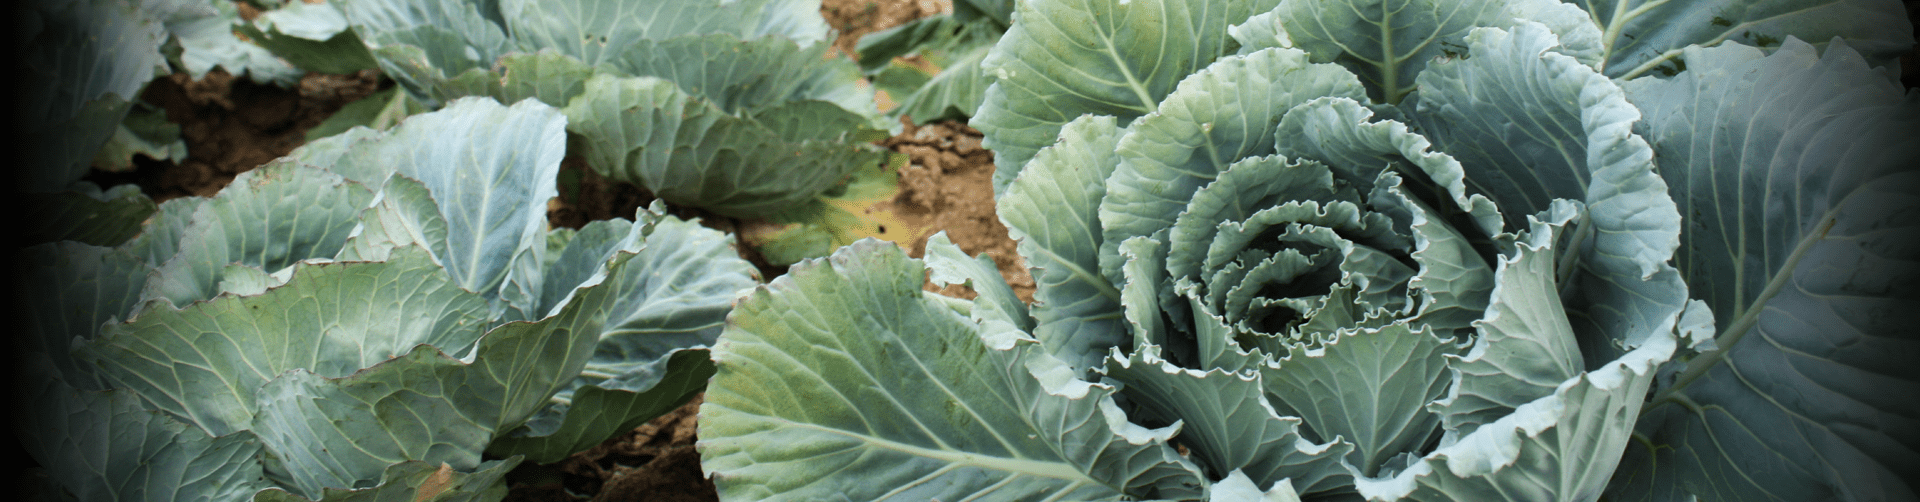 Cabbage from a GLK Foods farm